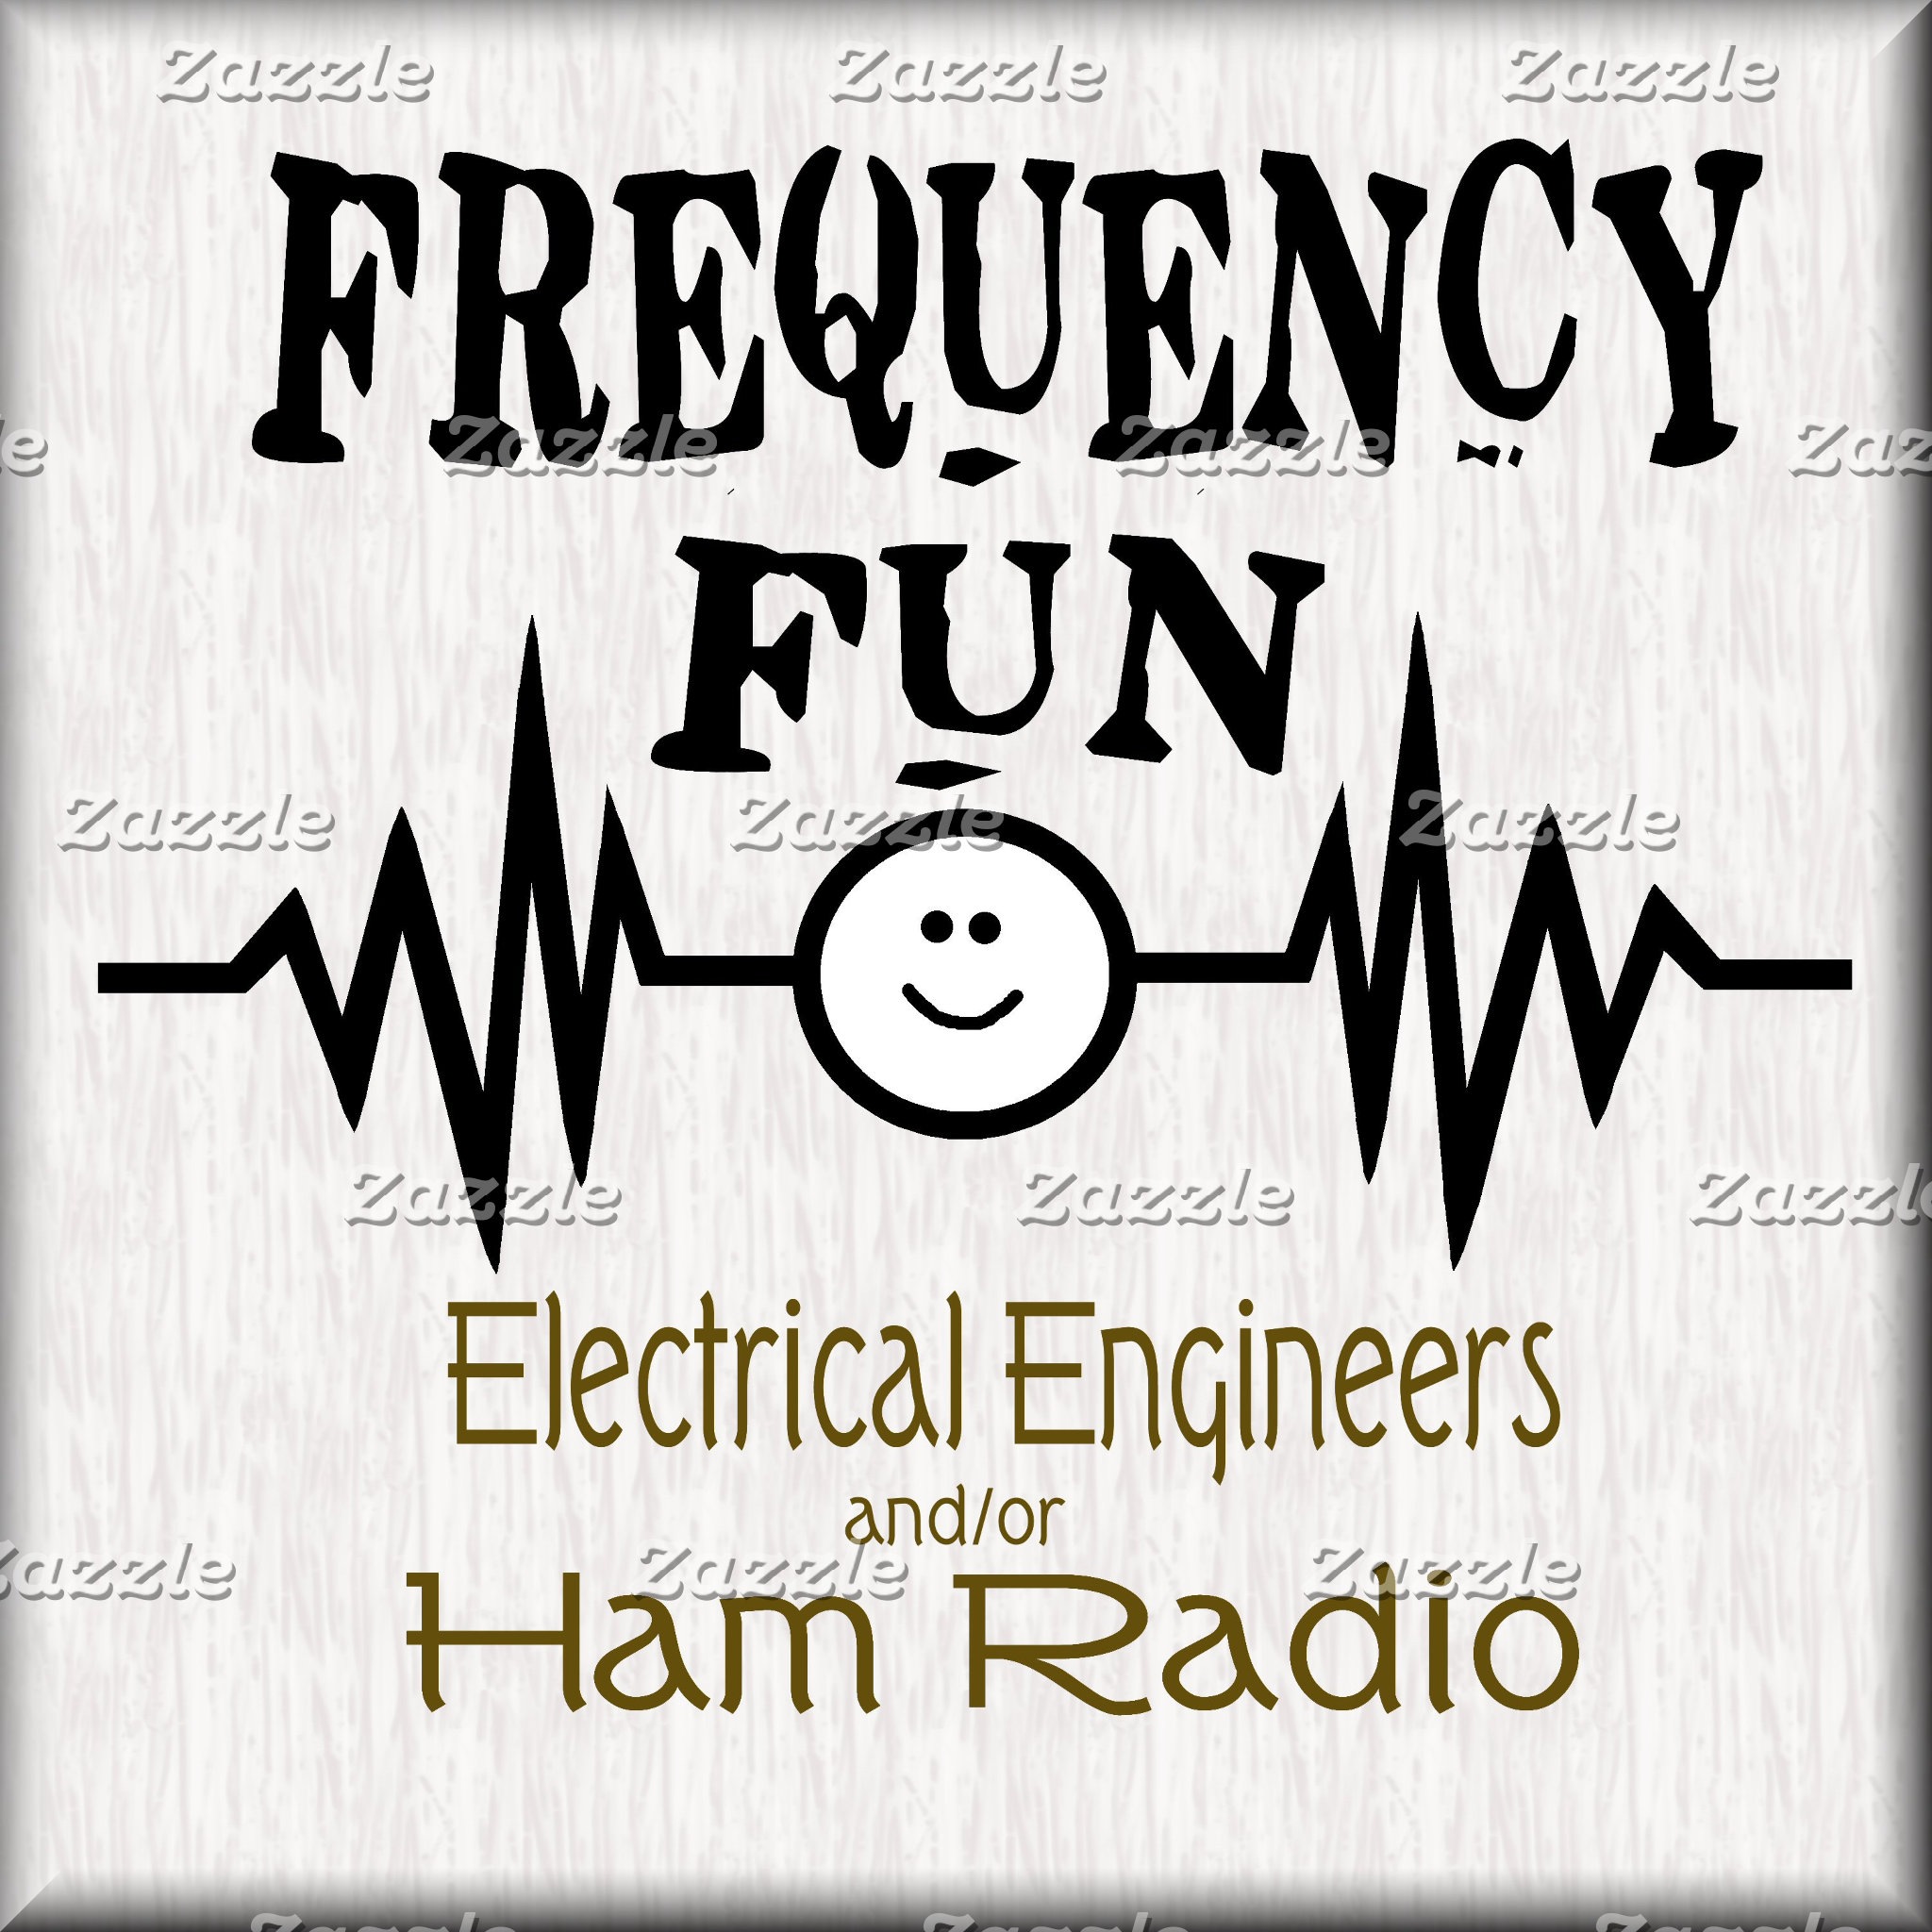 FREQUENCY FUN